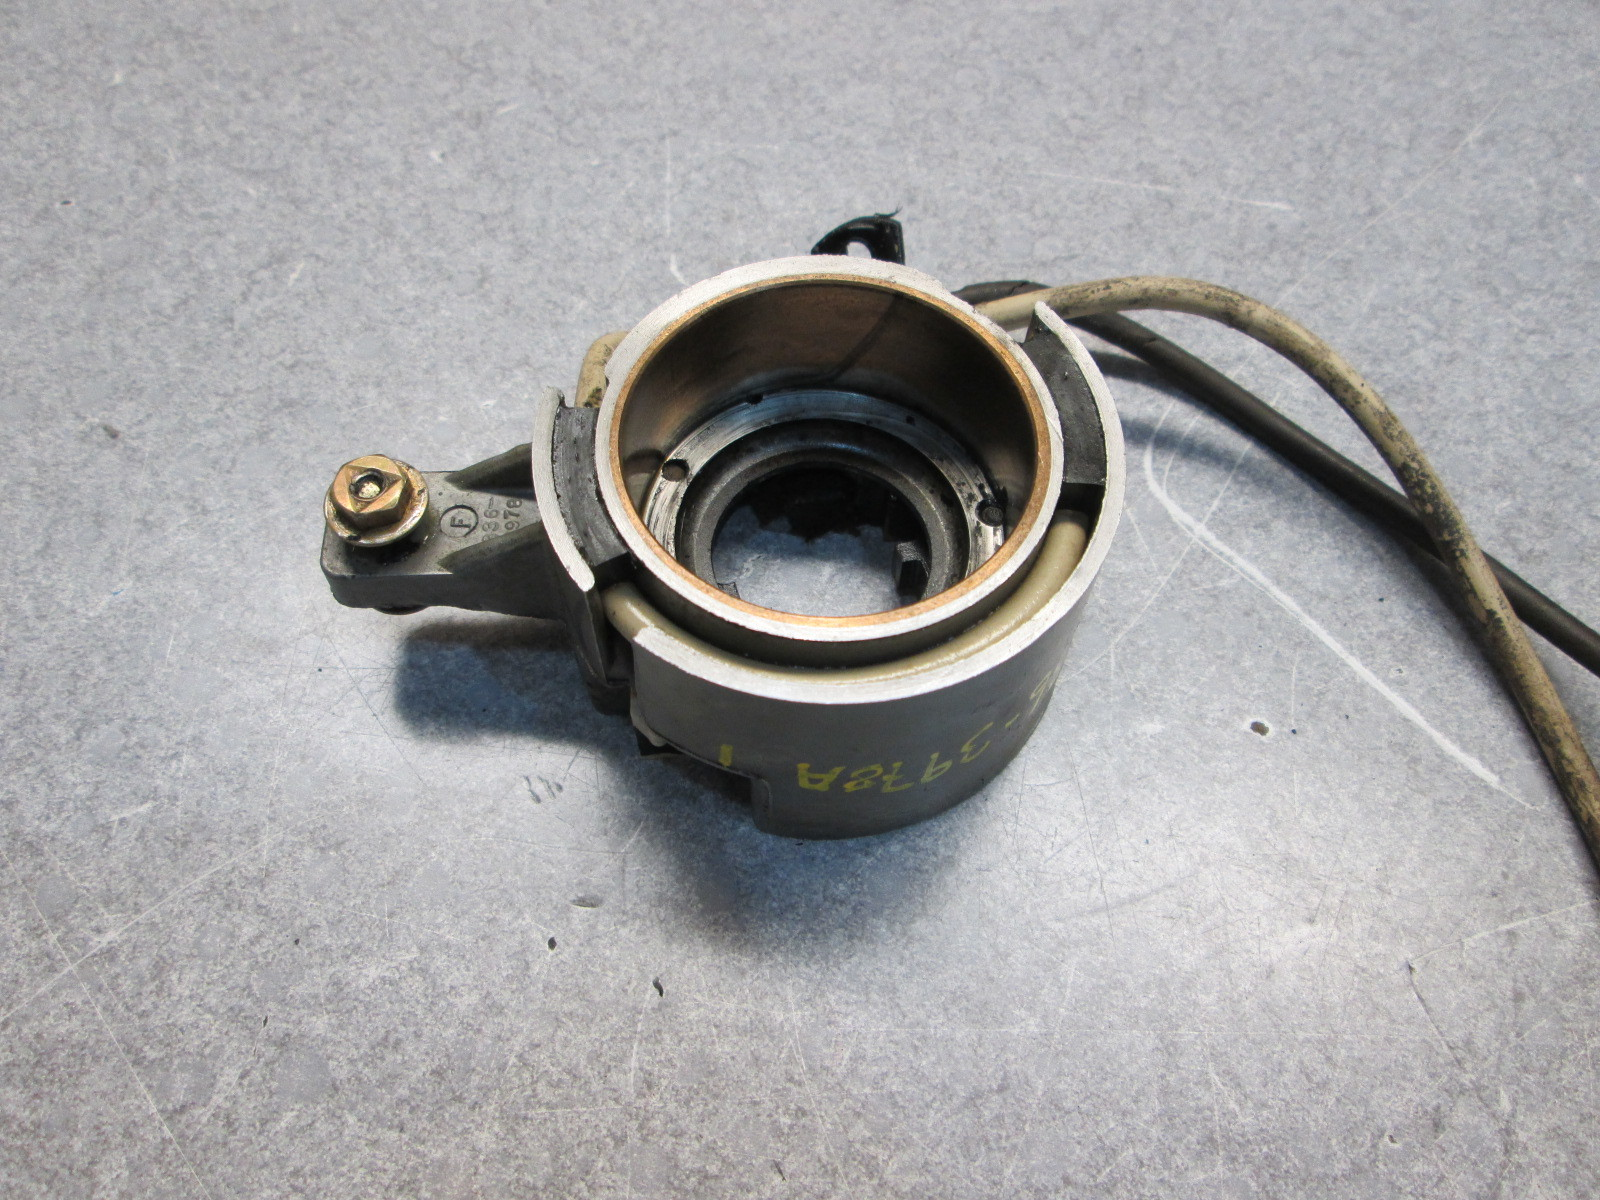 336 3978a 1 contact housing assy for 1970 mercury 200 20 for 200 hp mercury outboard motors for sale